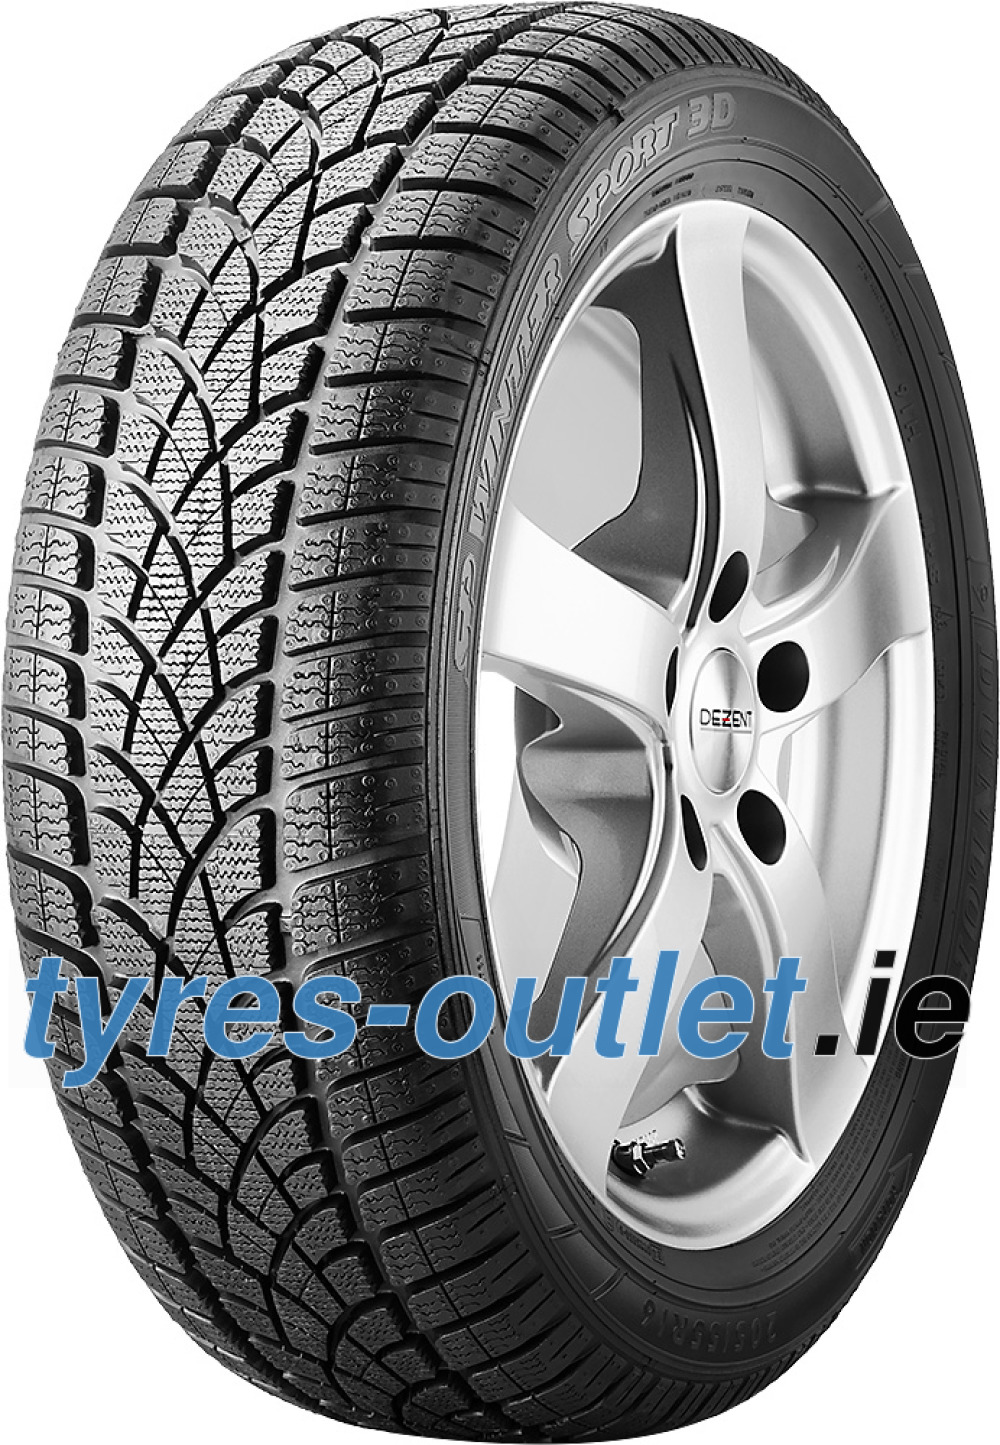 Dunlop SP Winter Sport 3D ( 235/50 R18 101H XL , with rim protection (MFS) )